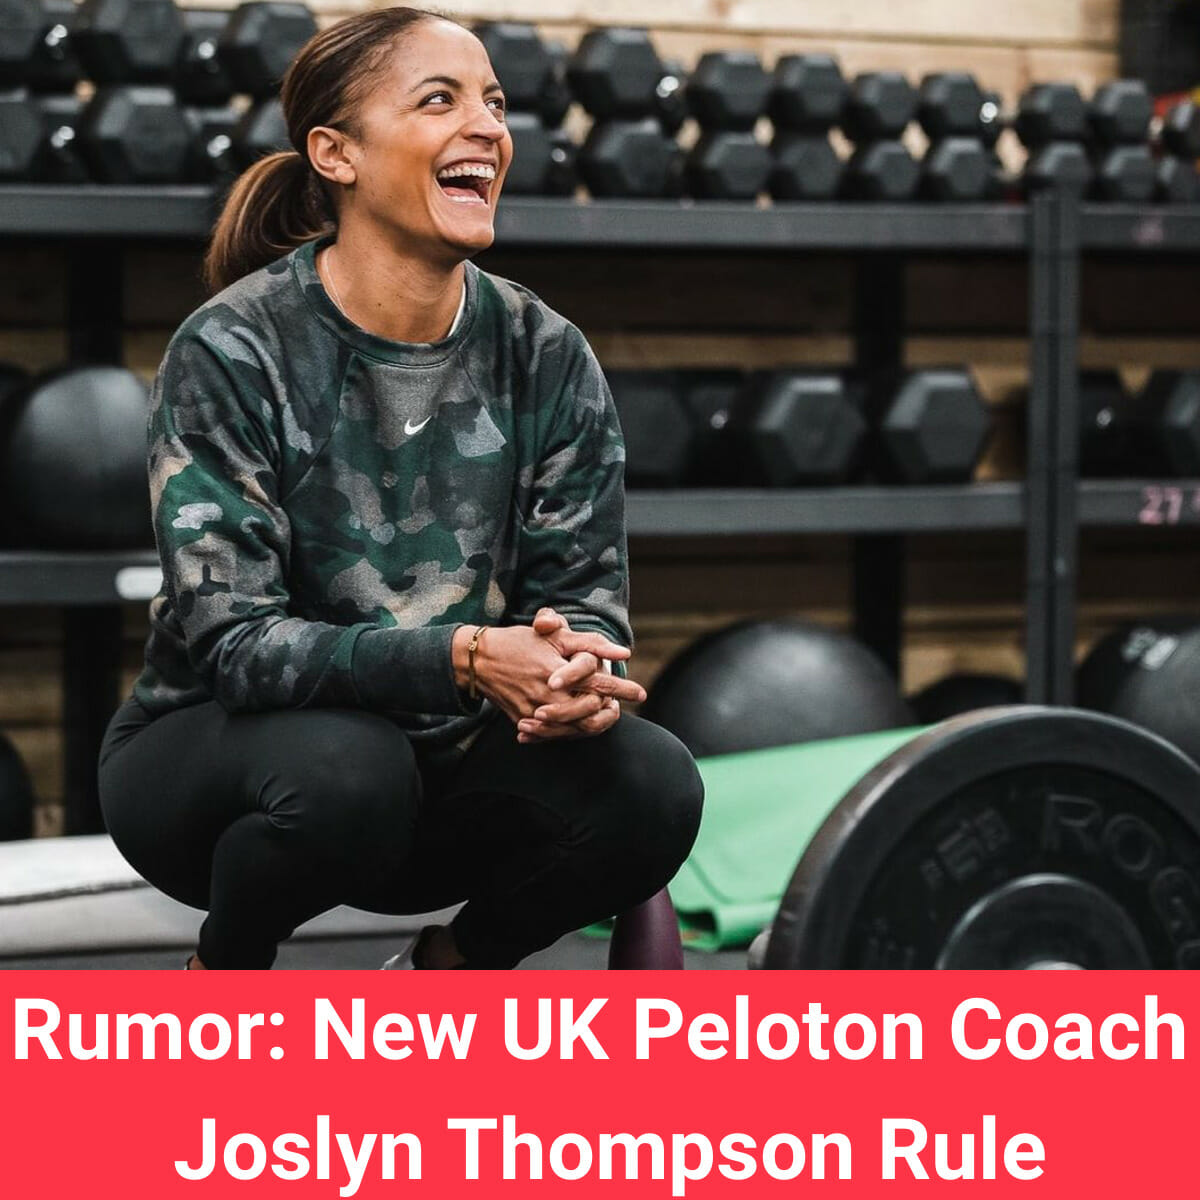 A new rumor indicates Joslyn Thompson Rule might be a new UK Tread coach for Peloton.